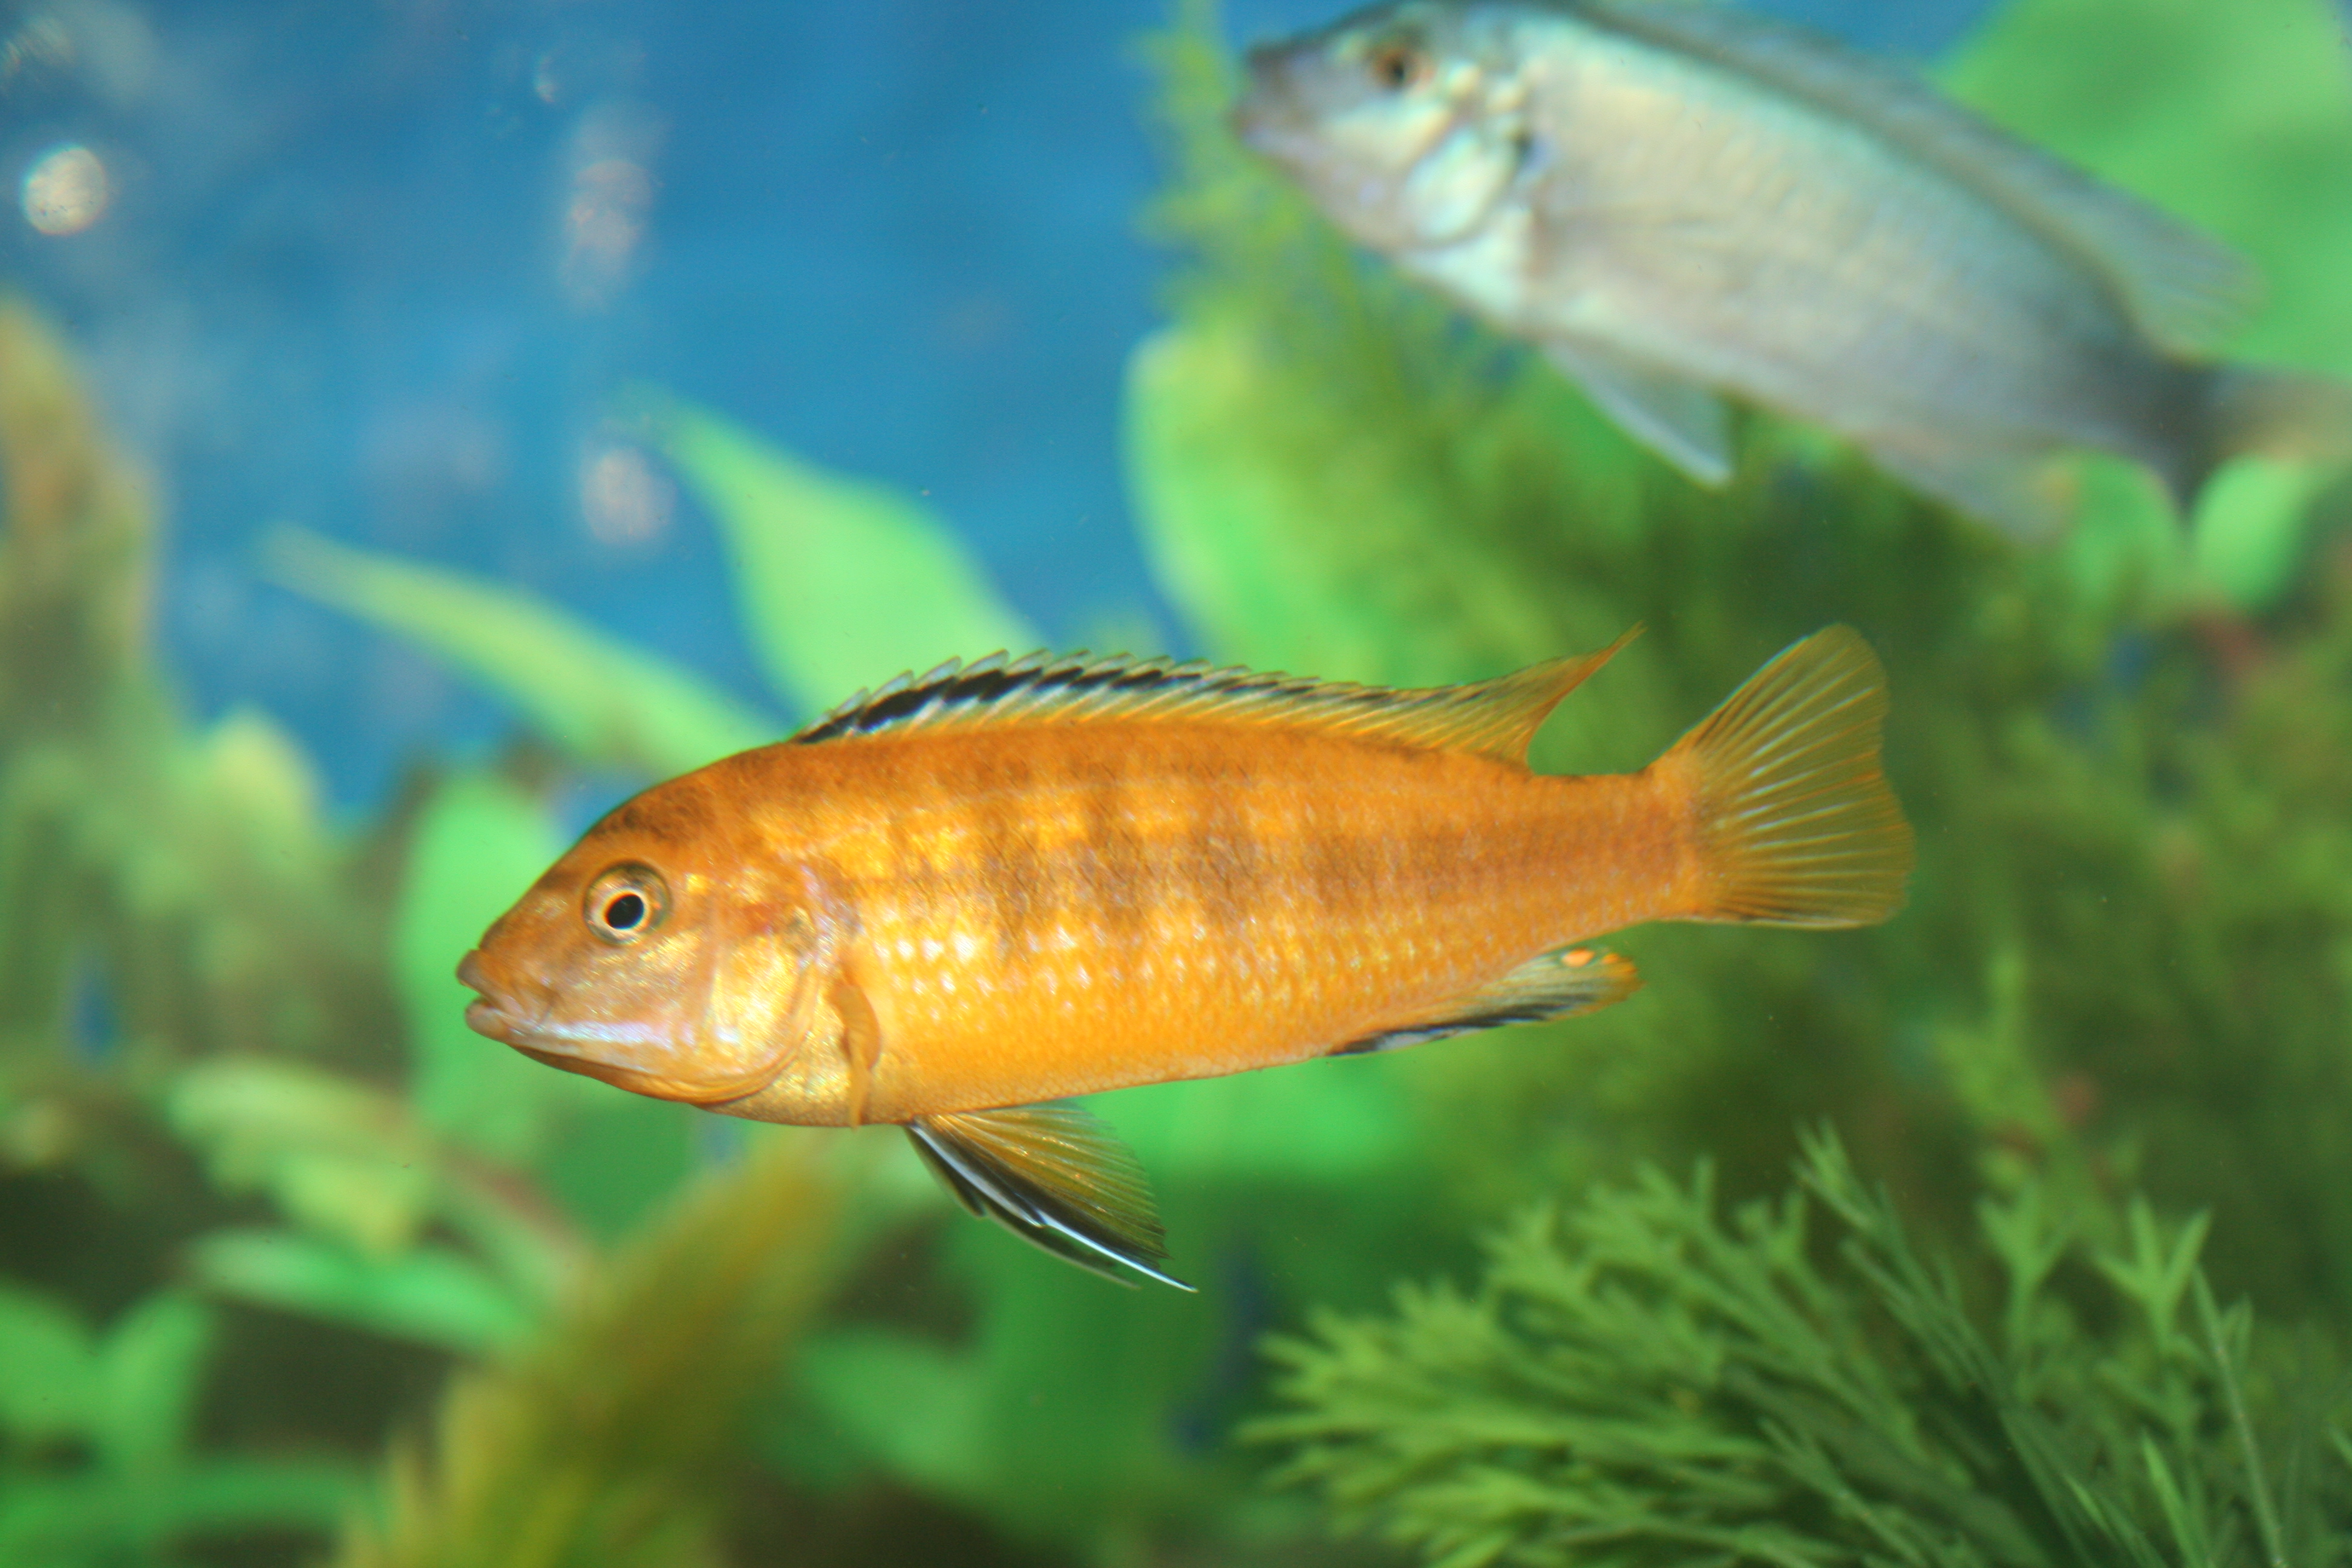 All information about Yellow Lab Cichlid - #catfactsblog